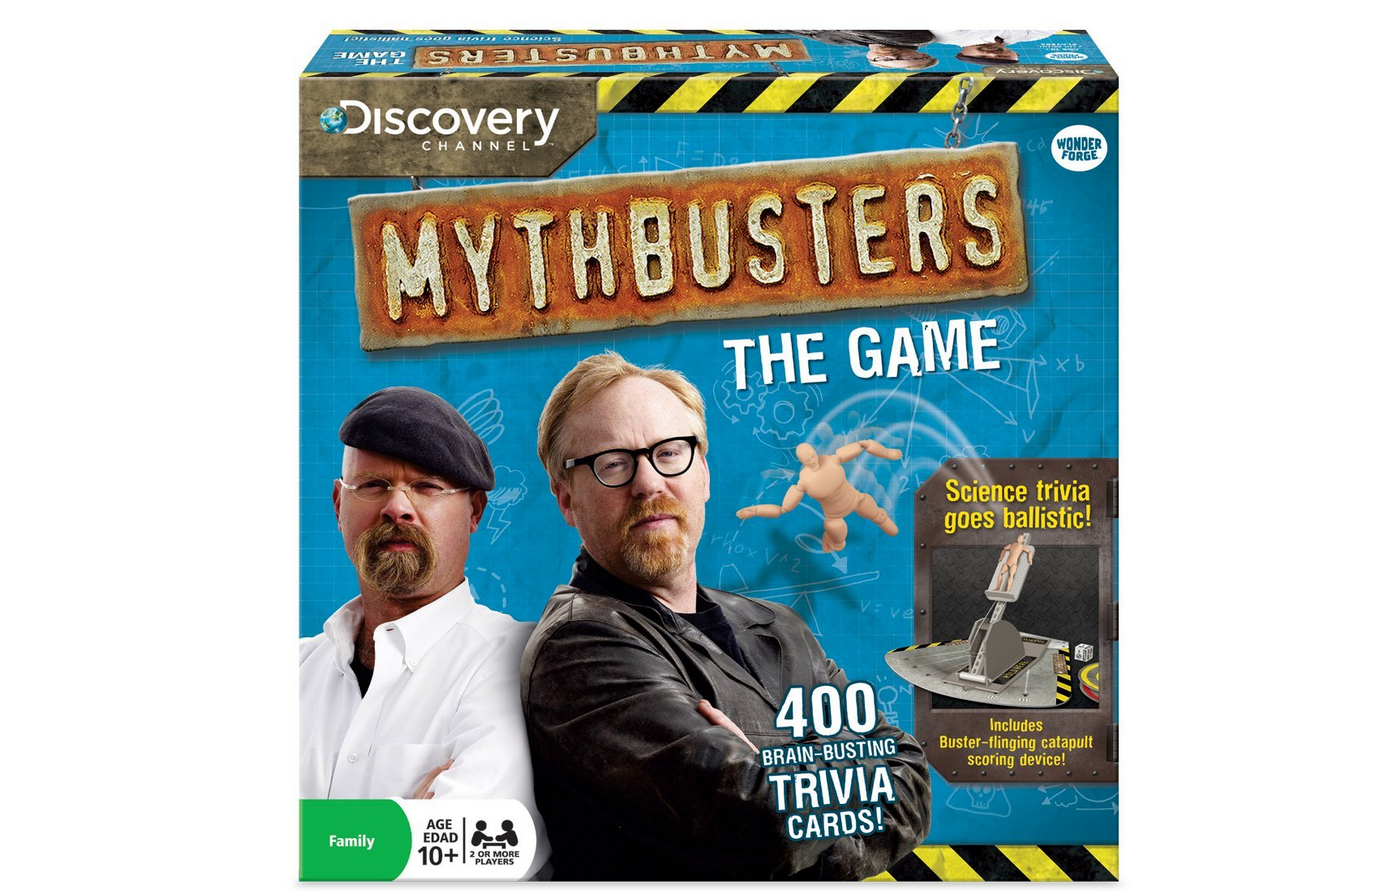 Mythbusters The Game